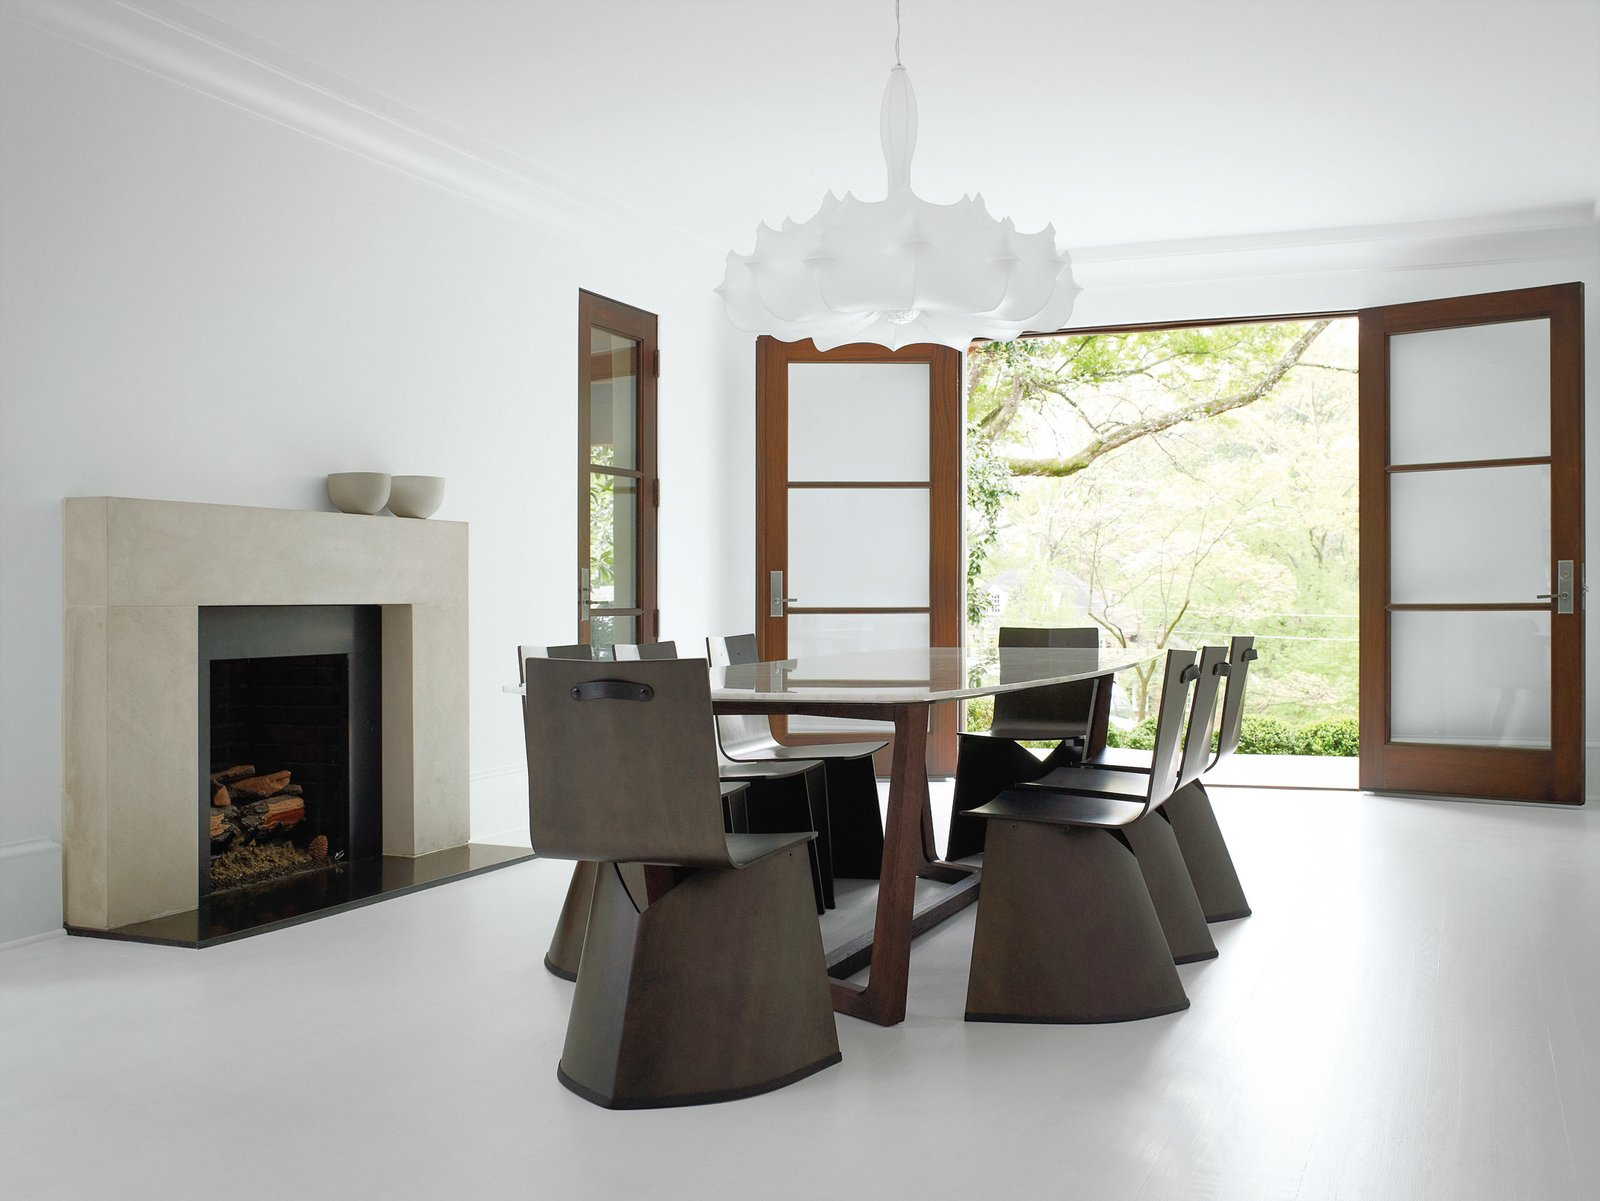 """Dining Room, Chair, Table, and Standard Layout Fireplace Konstantin Grcic's Venus chairs for ClassiCon surround a table by Poliform in the formal dining room. Hill selected the Flos chandelier designed by Marcel Wanders for its """"Old World reverence."""" The sleek fireplace mantel was designed by Hill and cobbled together onsite from three solid slabs of limestone.  Photo 5 of 9 in A Designer Brings Her Bold Brand of Texas Modern to this Atlanta Family Home from Barbara Hill on Designing Creative and Comfortable Rooms"""